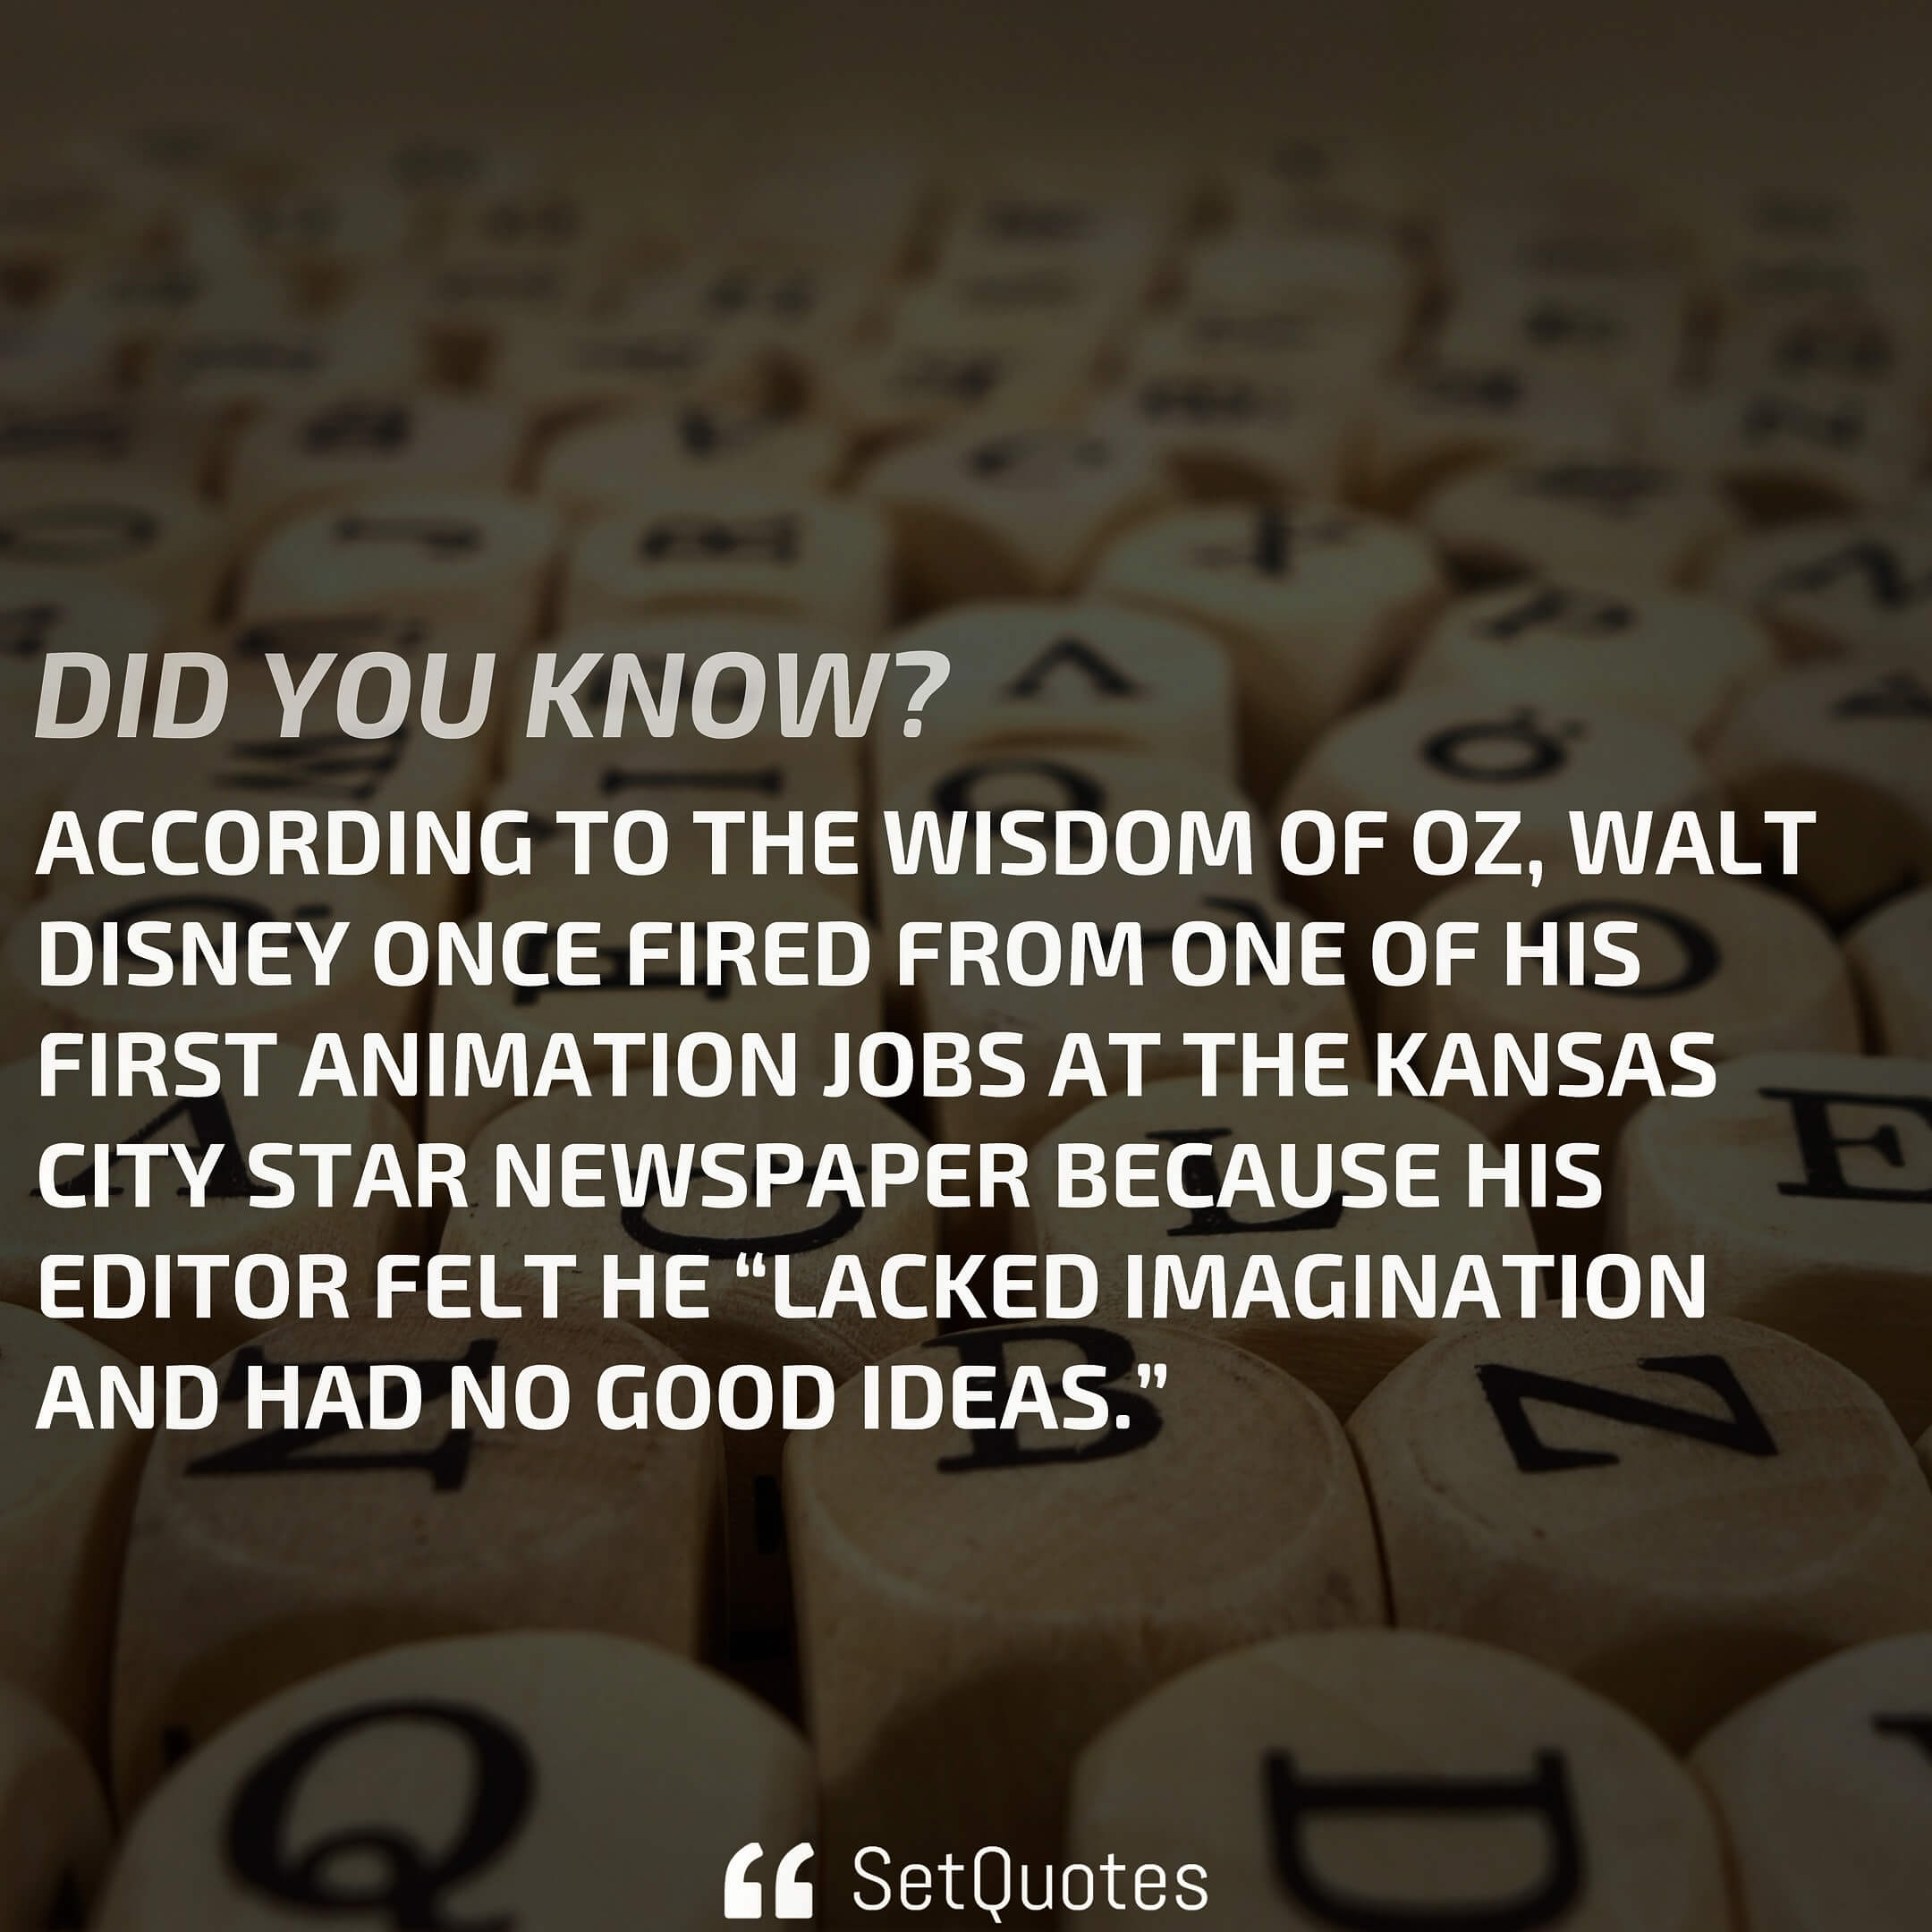 According to the wisdom of oz, walt disney once fired from one of his first animation jobs at the kansas city.